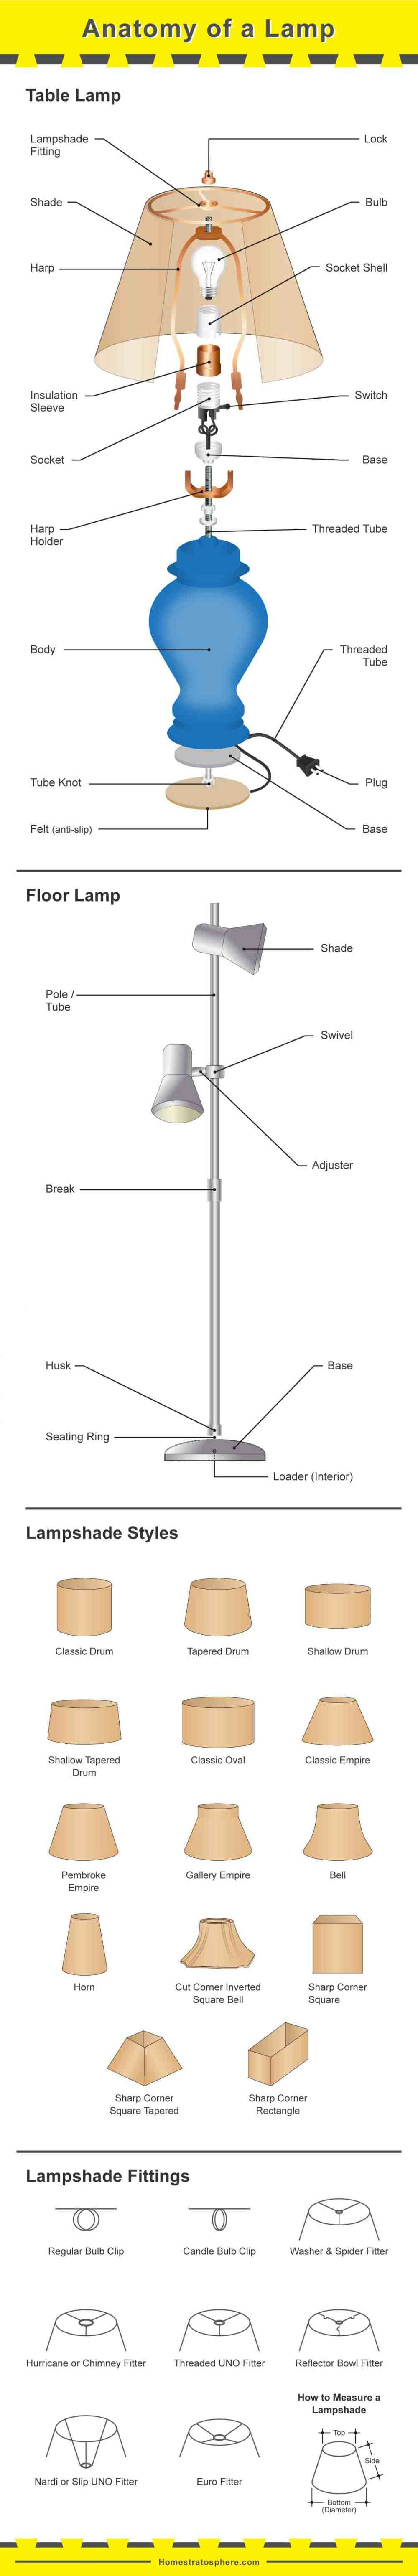 medium resolution of diagram showing the parts of a table lamp and floor lamp